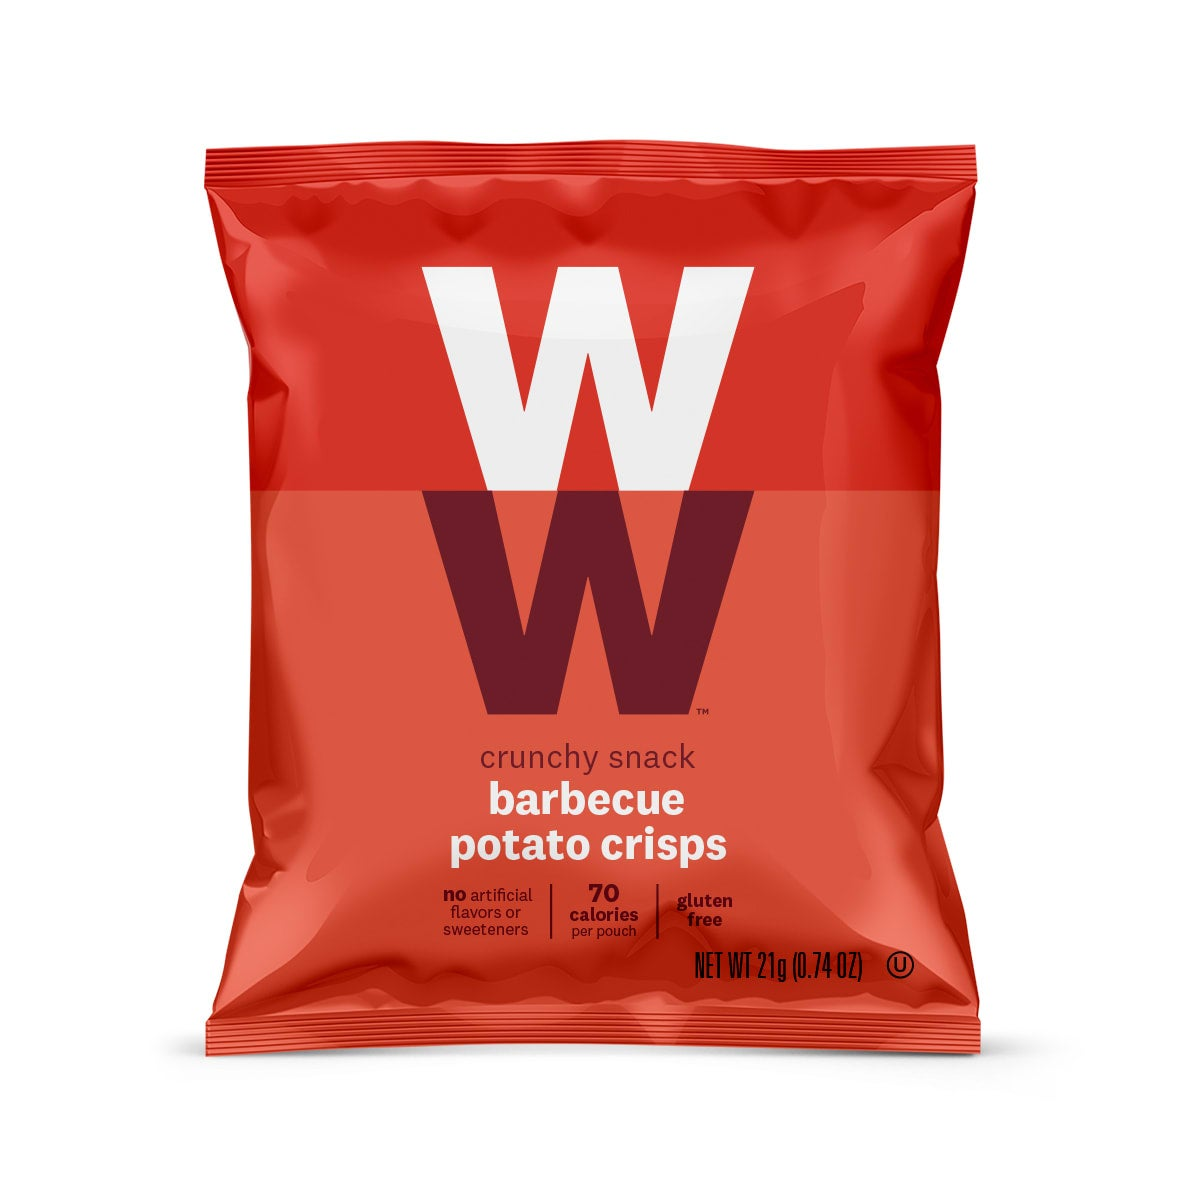 Barbecue Potato Crisps - front of pouch